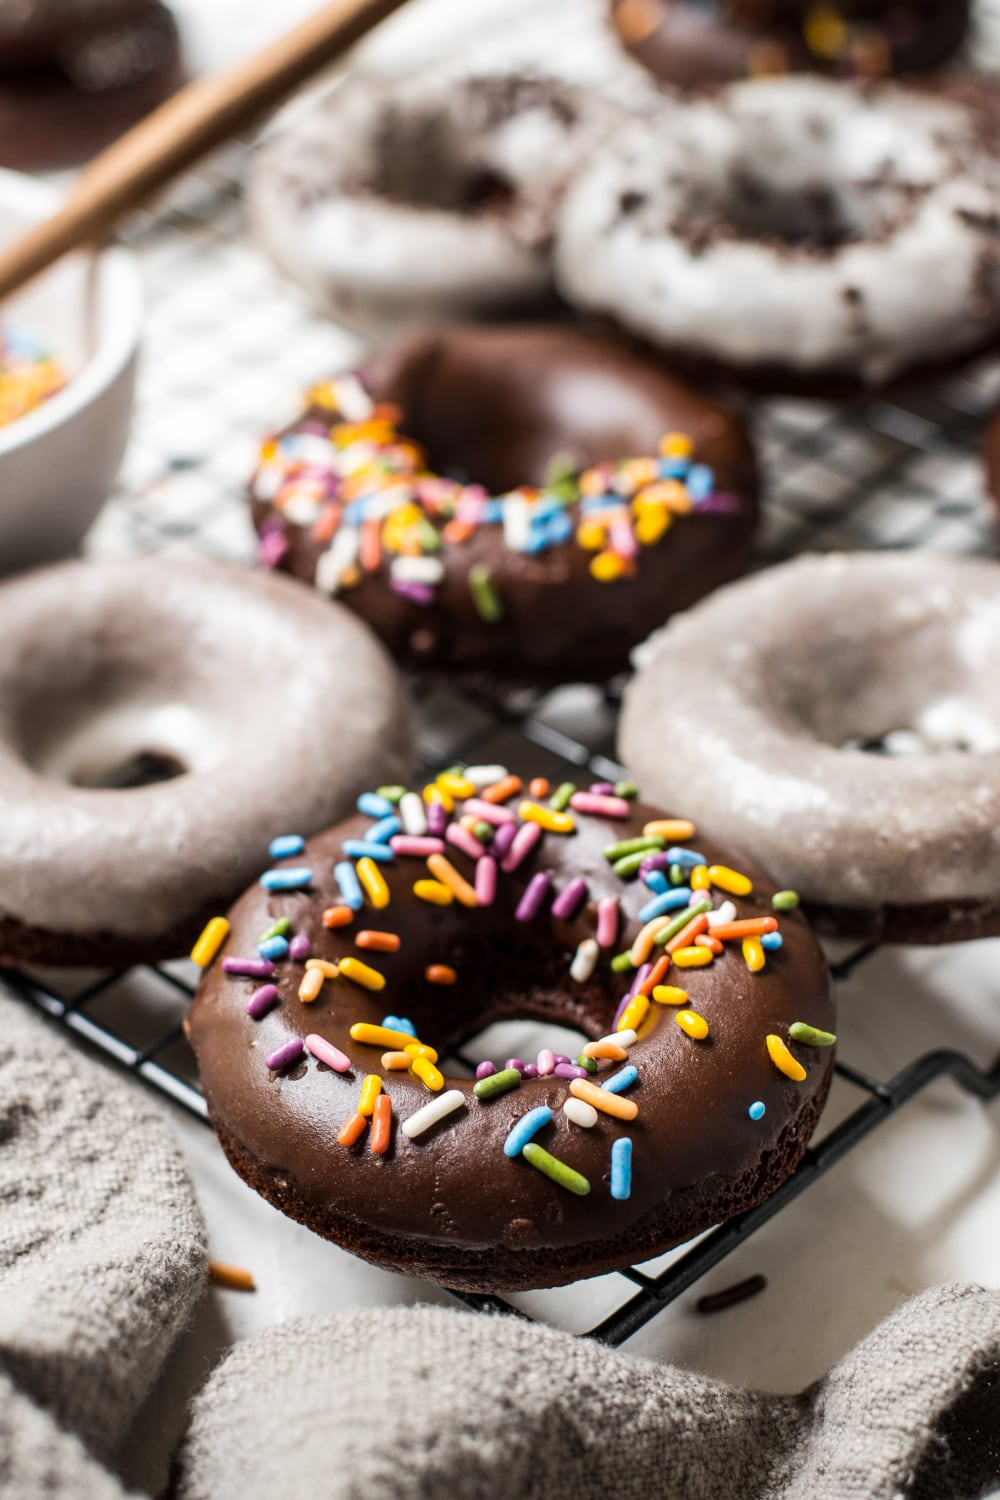 a paleo chocolate frosted donut with sprinkles